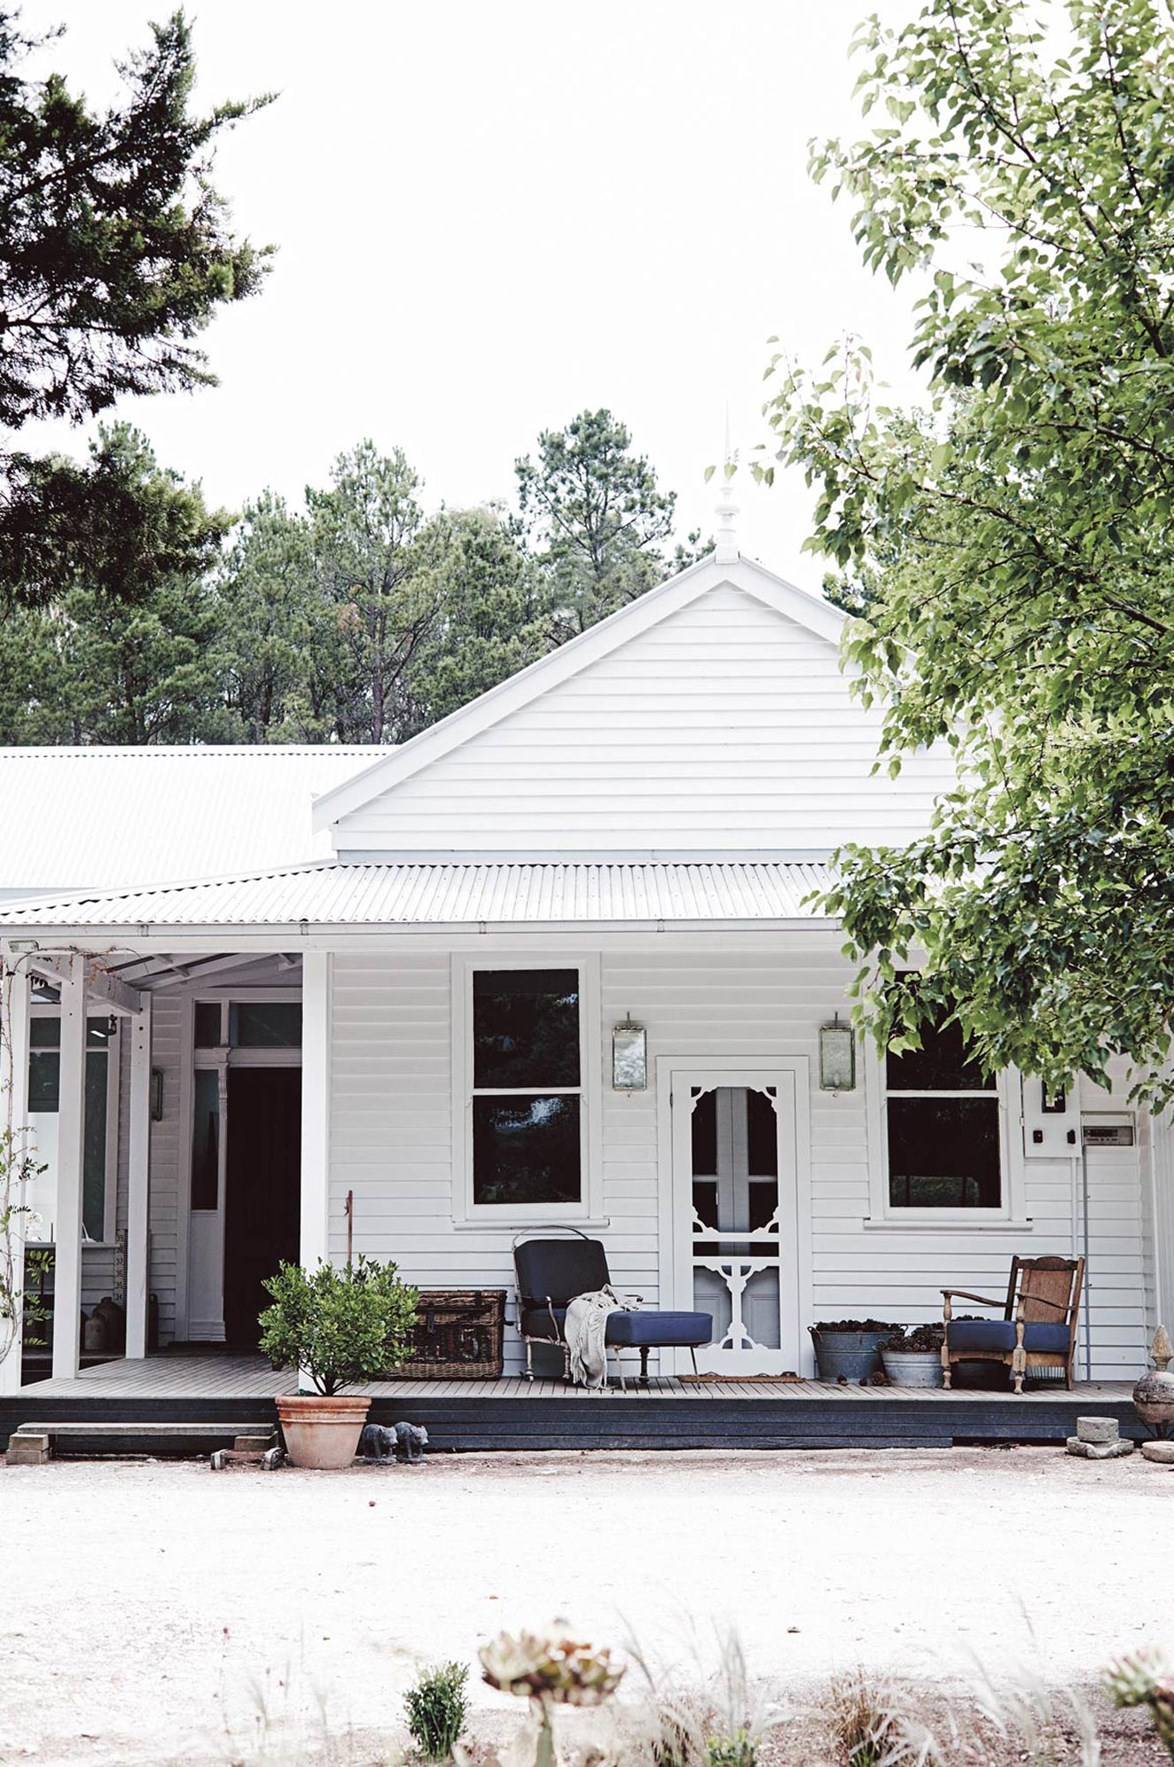 """A former post-office in in Victoria's central highlands has been transformed into a [French inspired country home](https://www.homestolove.com.au/french-inspired-country-home-in-spargo-creek-13750